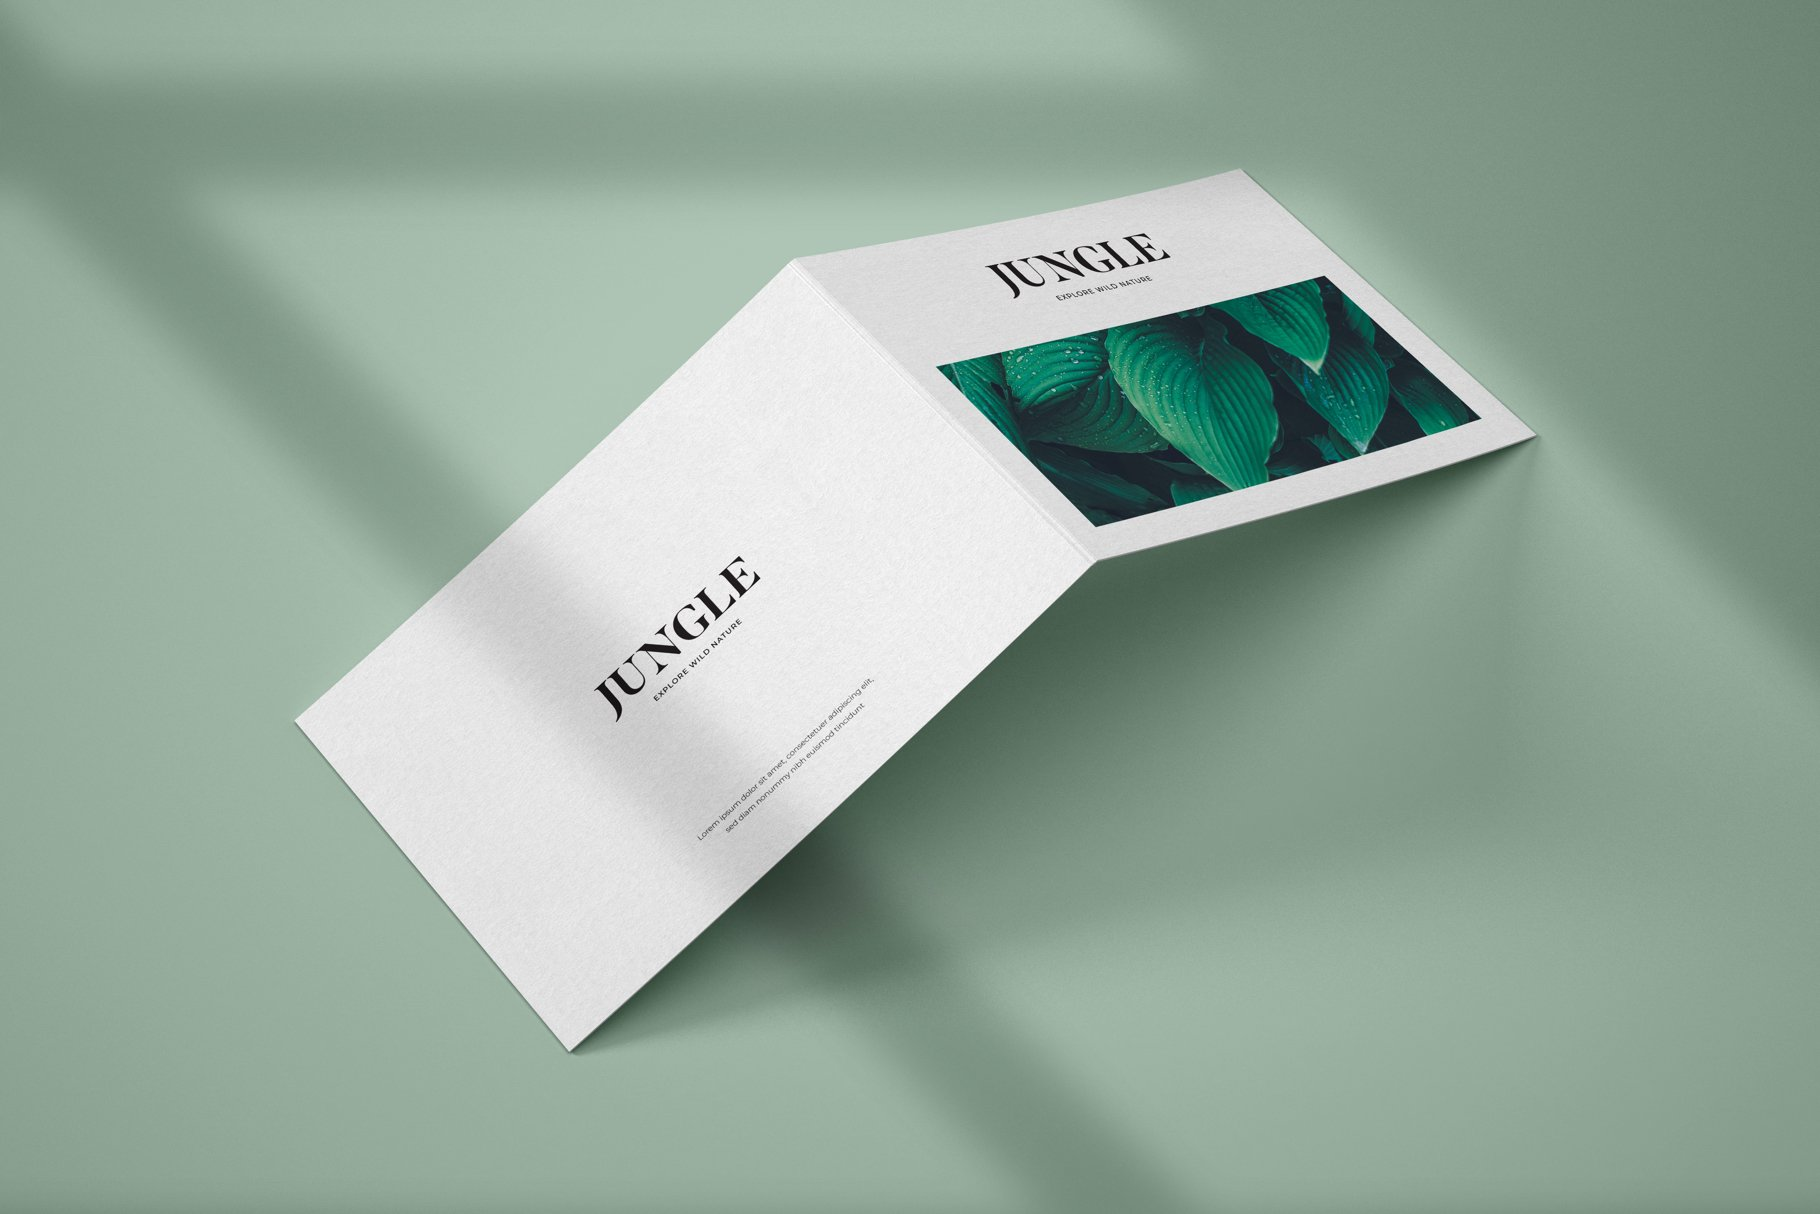 Horizontal Bifold Brochure PSD Mockup Template with Overlay Shadow